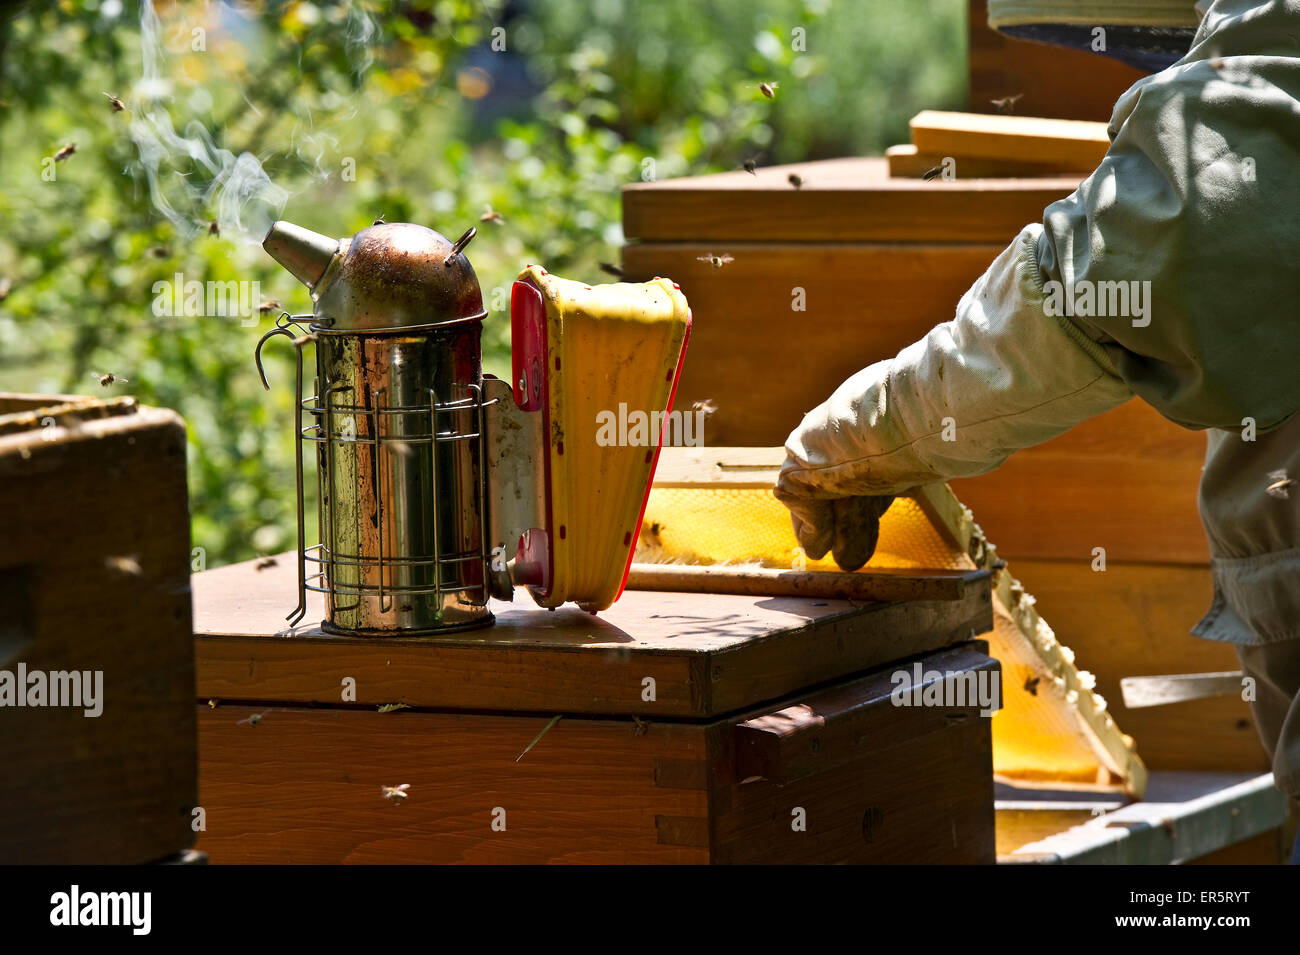 Beekeeper with smoker at wooden beehives, Freiburg im Breisgau, Black Forest, Baden-Wuerttemberg, Germany - Stock Image